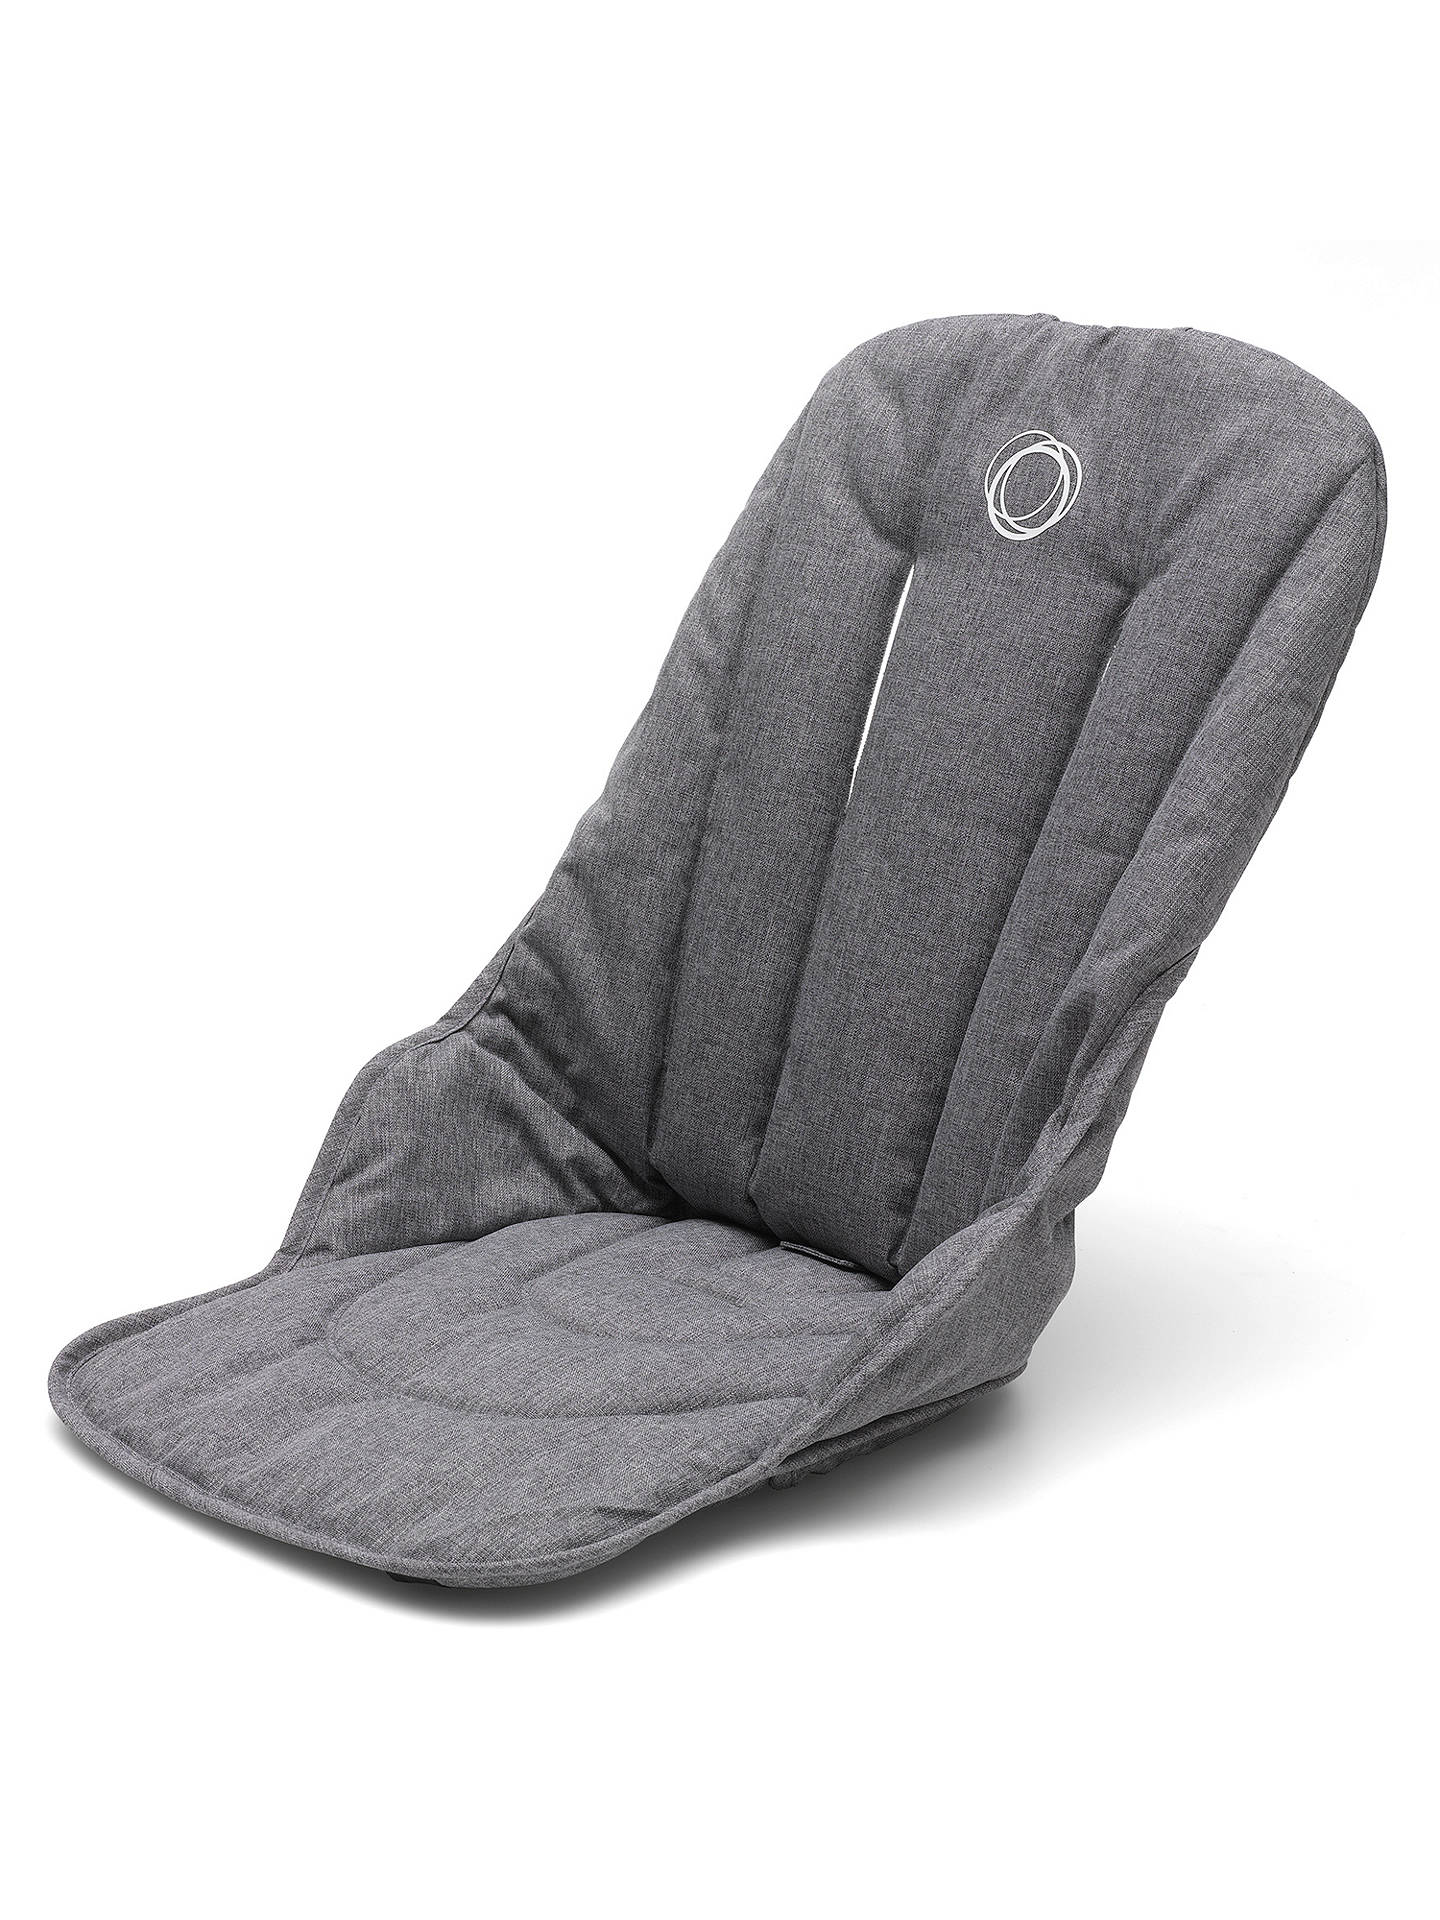 BuyBugaboo Fox Complete Pushchair and Carrycot, Aluminium with Grey Melange Fabric and Sun Canopy Online at johnlewis.com